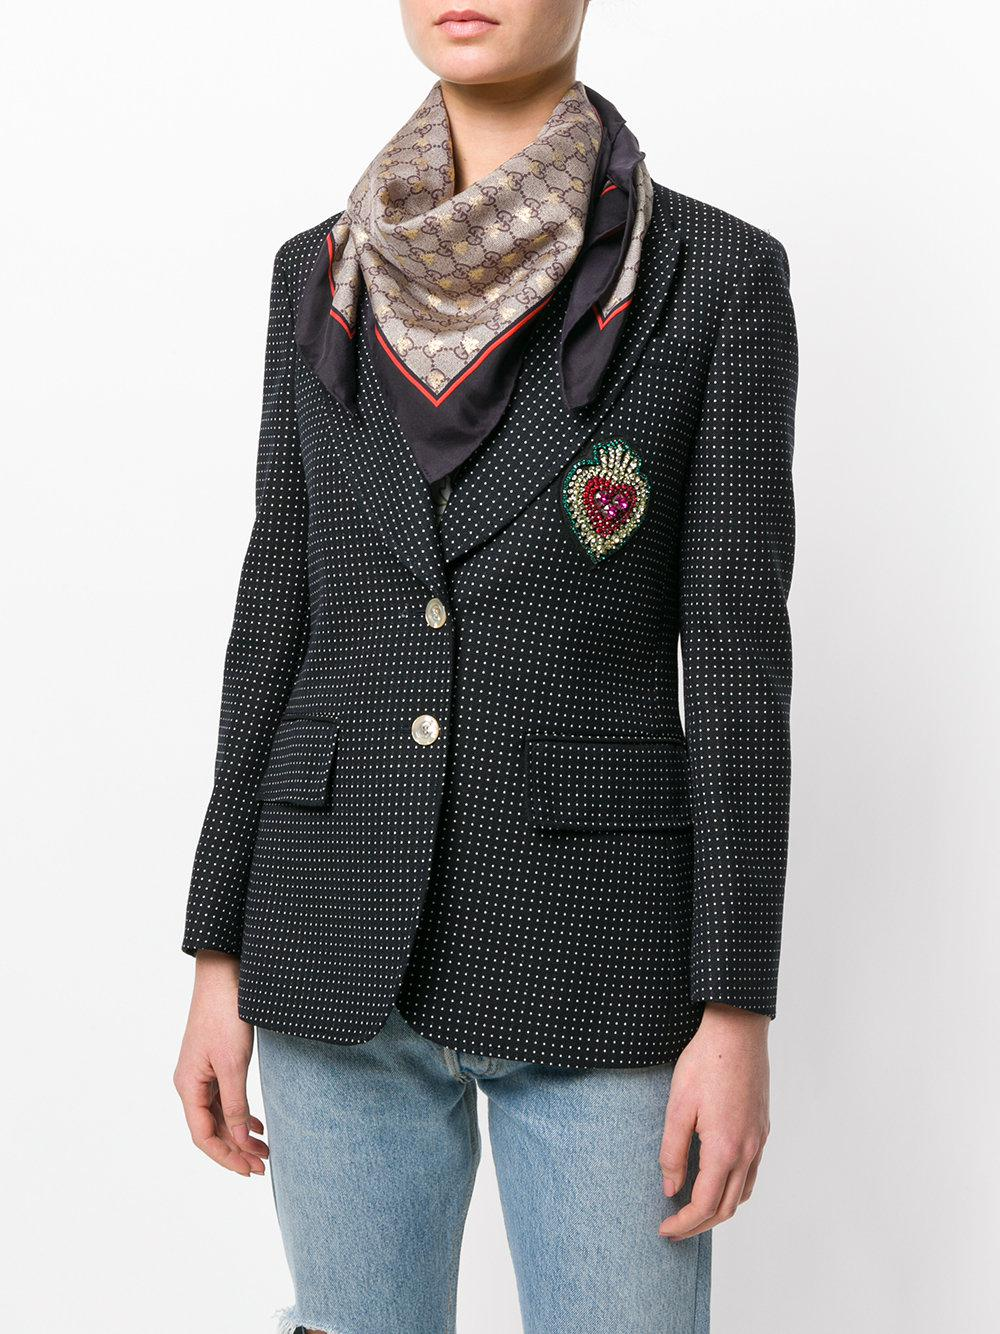 2223cb1c86 Gucci Gg Bees Scarf - Lyst